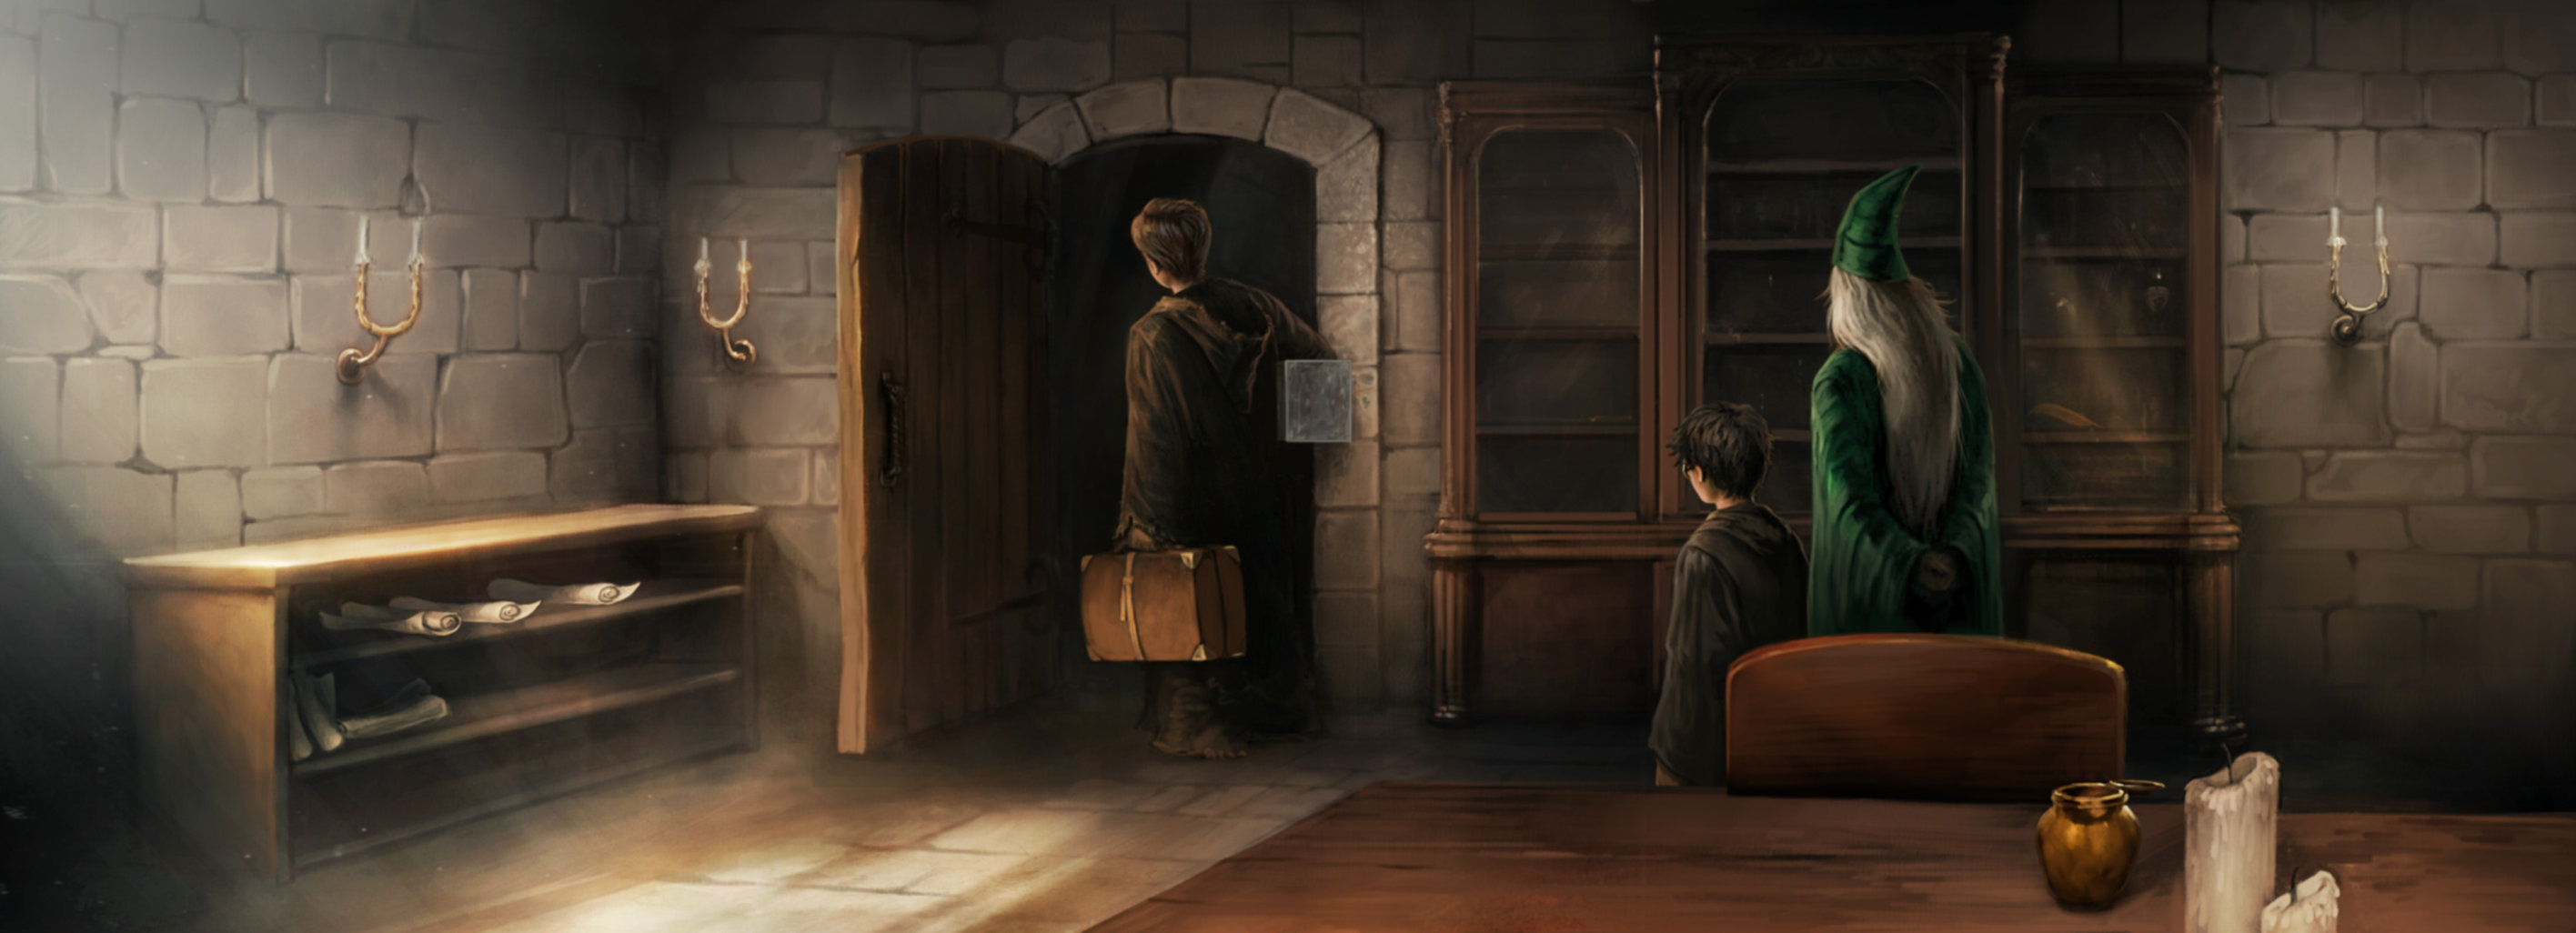 Lupin leaves his office while Harry and Dumbledore watch